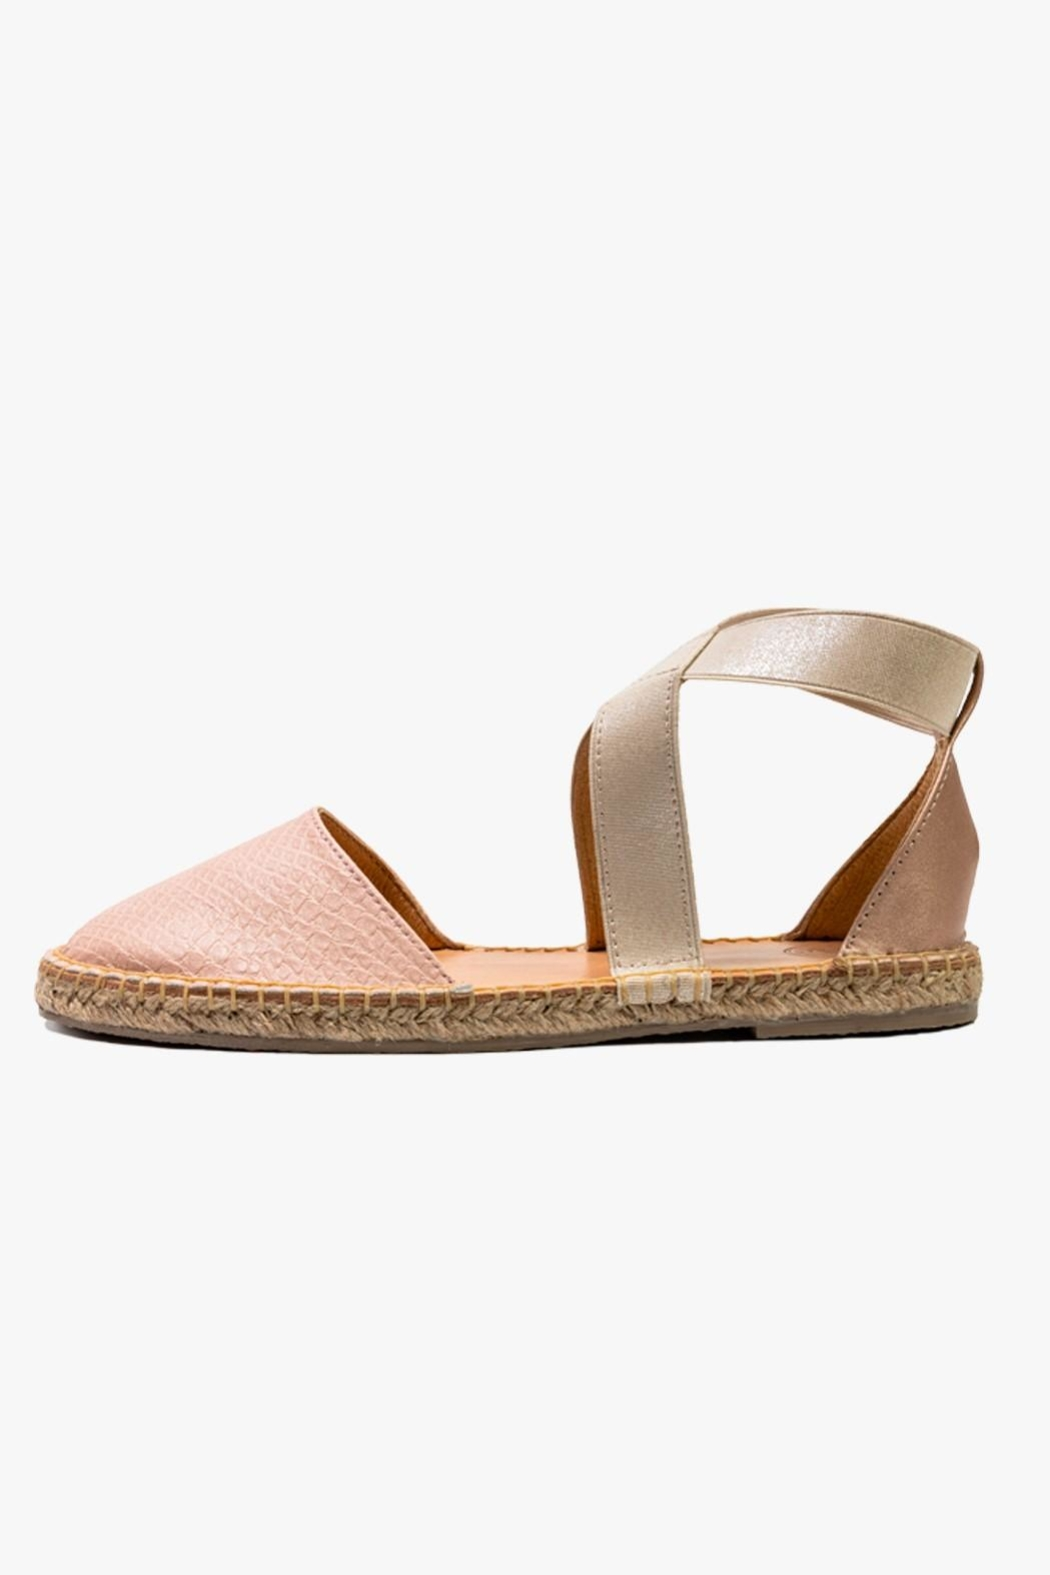 Morkas Shoes Cross Pink Espadrille - Main Image